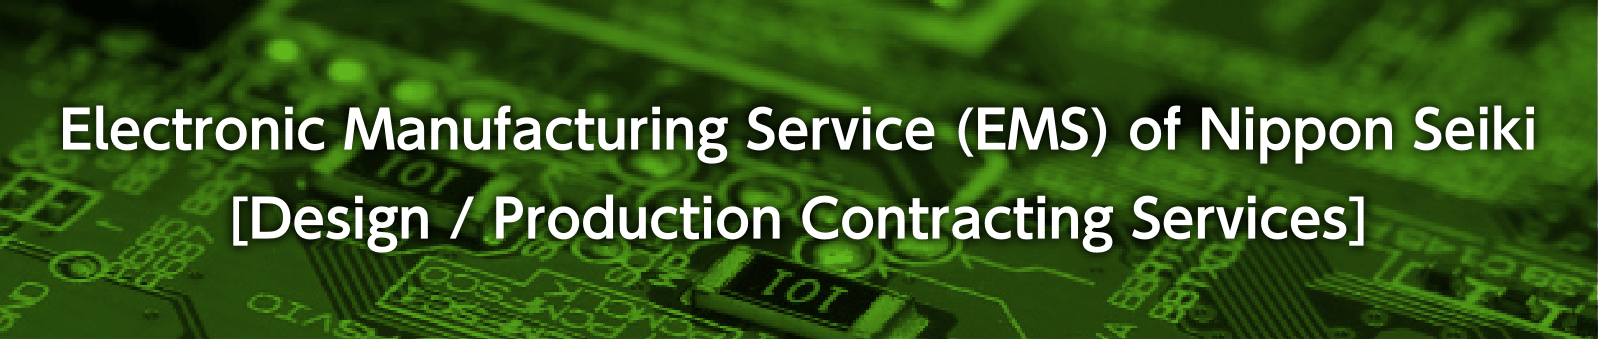 Electronic Manufacturing Service (EMS) of Nippon Seiki [Design / Production Contracting Services]